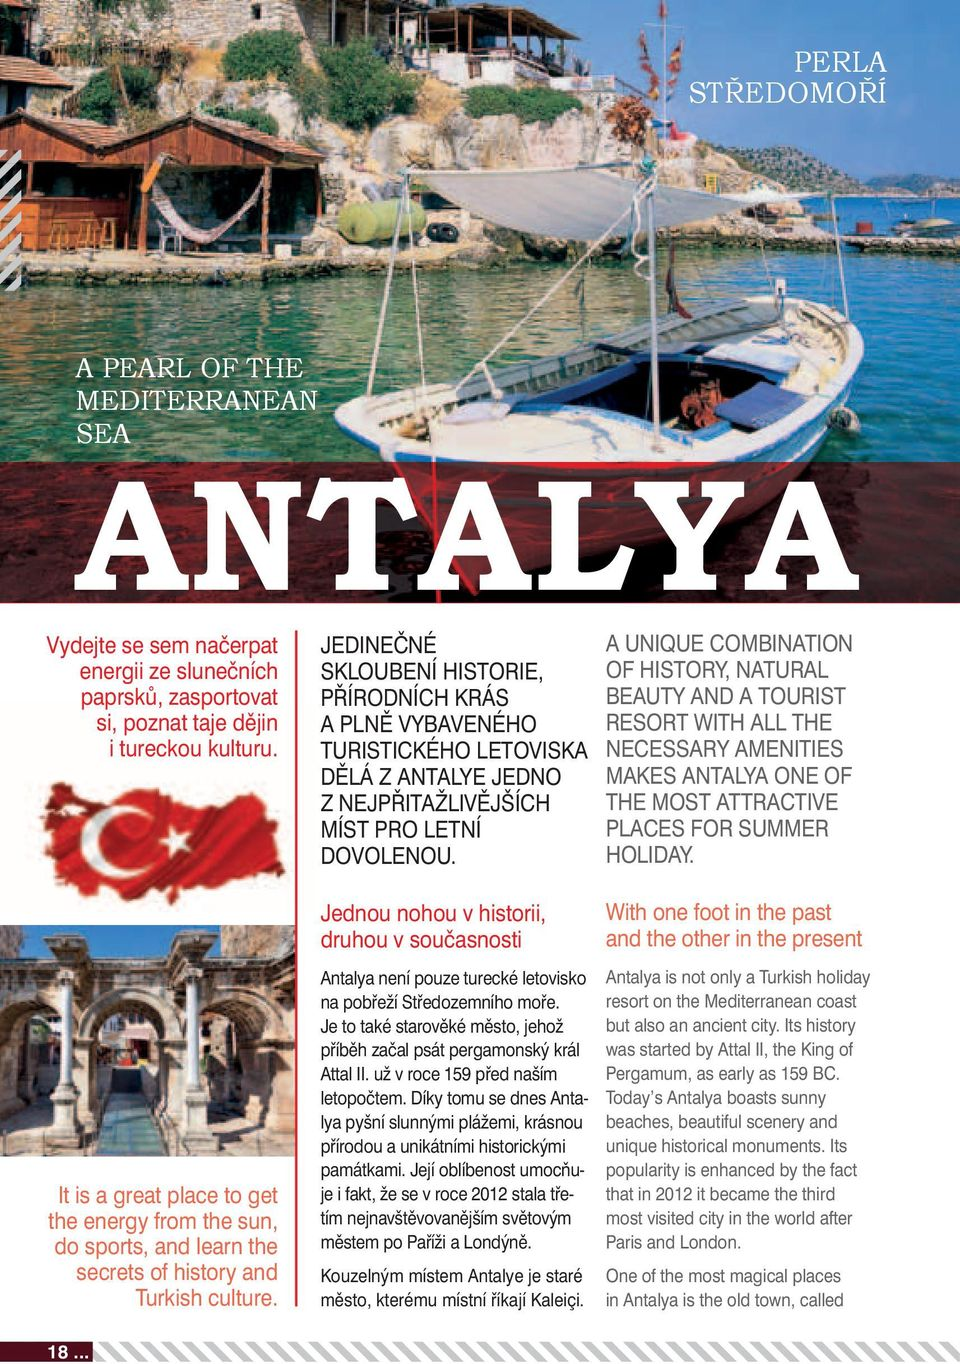 A UNIqUE COMBINATION OF HISTORY, NATURAL BEAUTY AND A TOURIST RESORT with ALL THE NECESSARY AMENITIES MAKES ANTALYA ONE OF THE MOST ATTRACTIVE PLACES FOR SUMMER HOLIDAY.